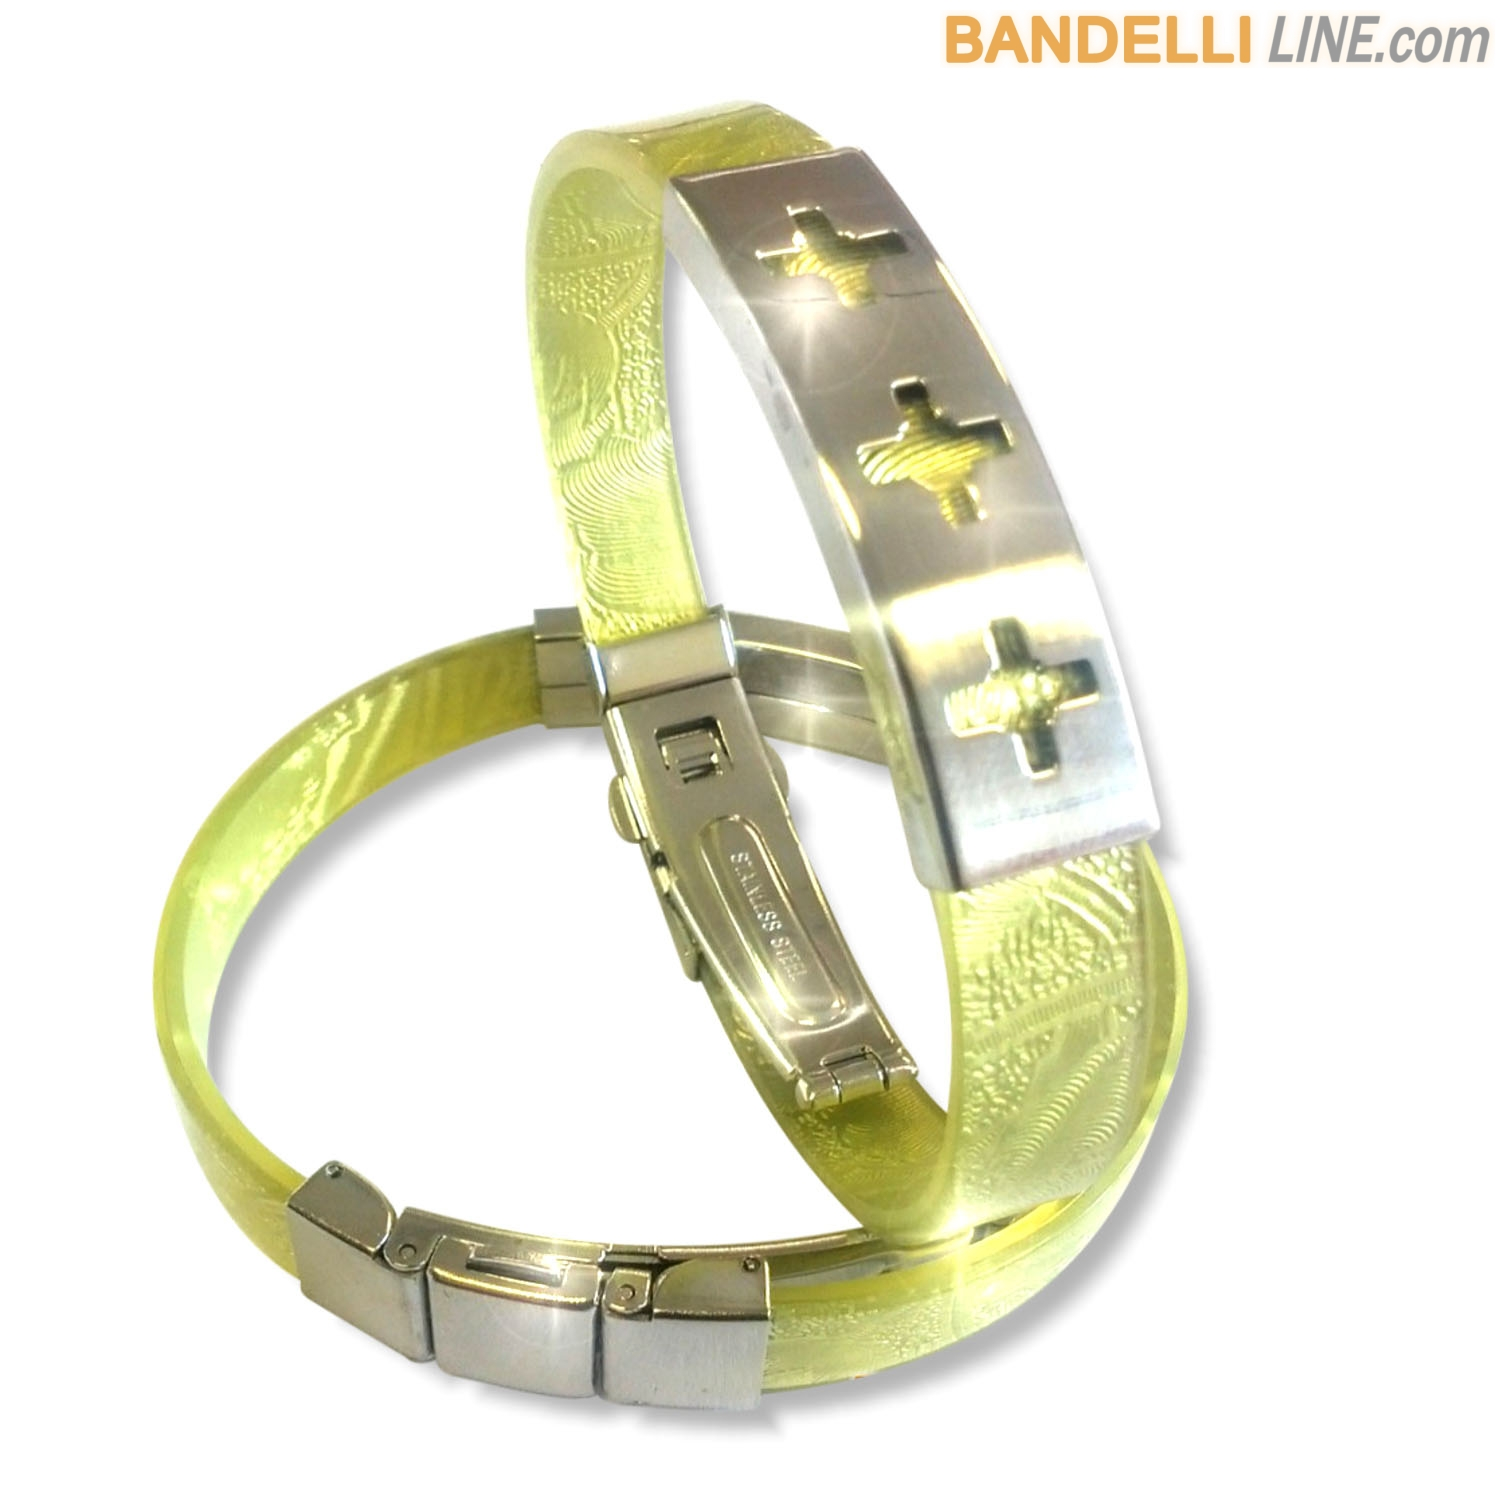 Arcobaleno - Braccialetto Ring Giallo C - Ring Yellow C